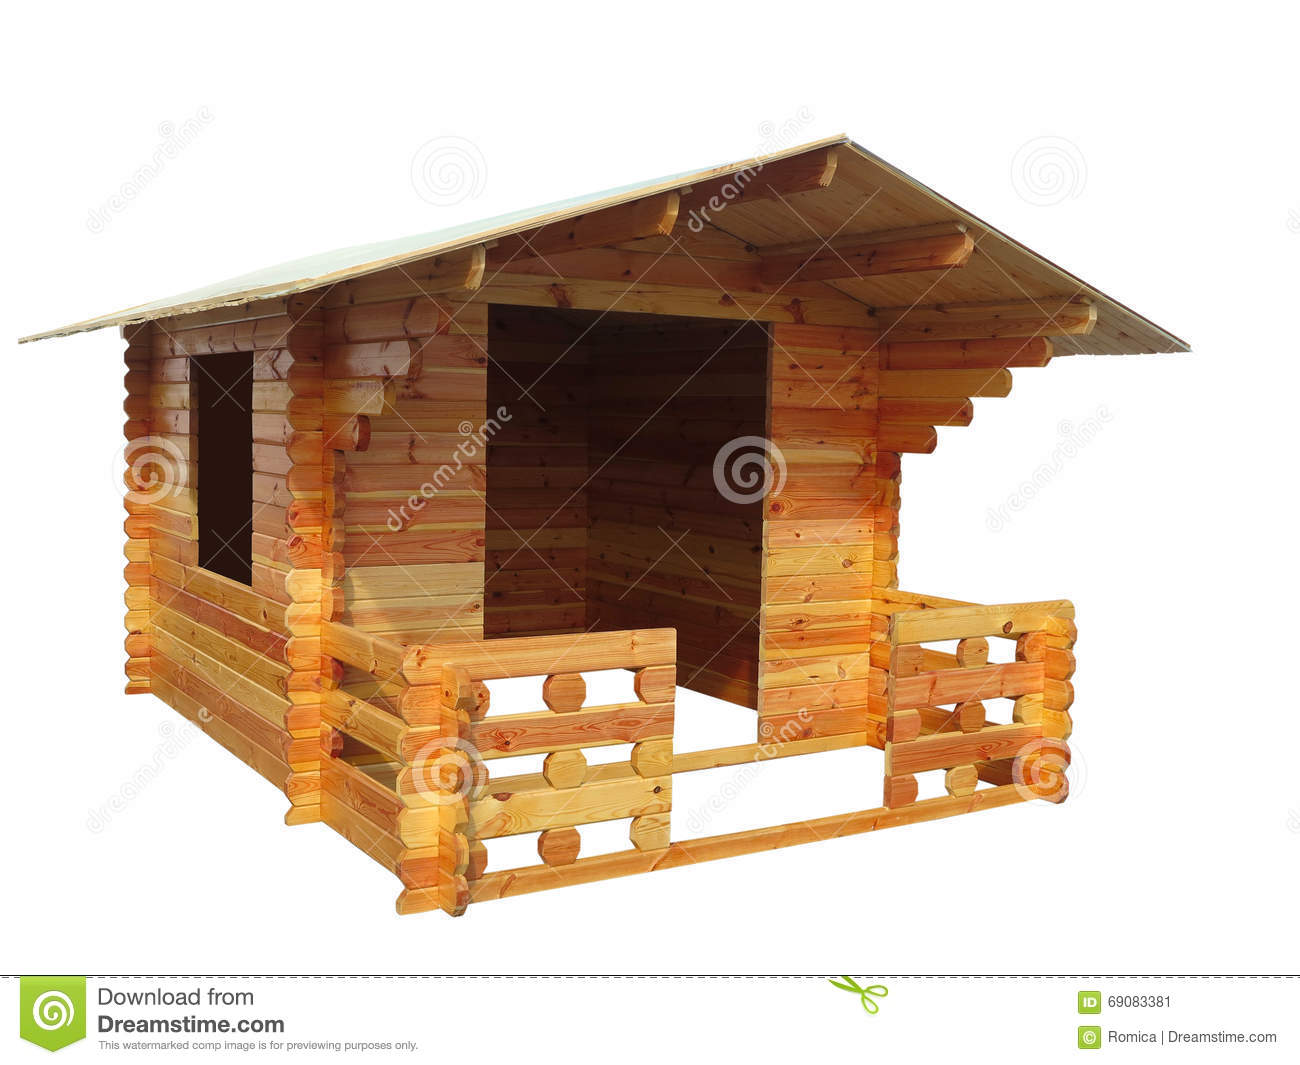 Symbolic wooden house royalty free stock photo for Mini wooden house